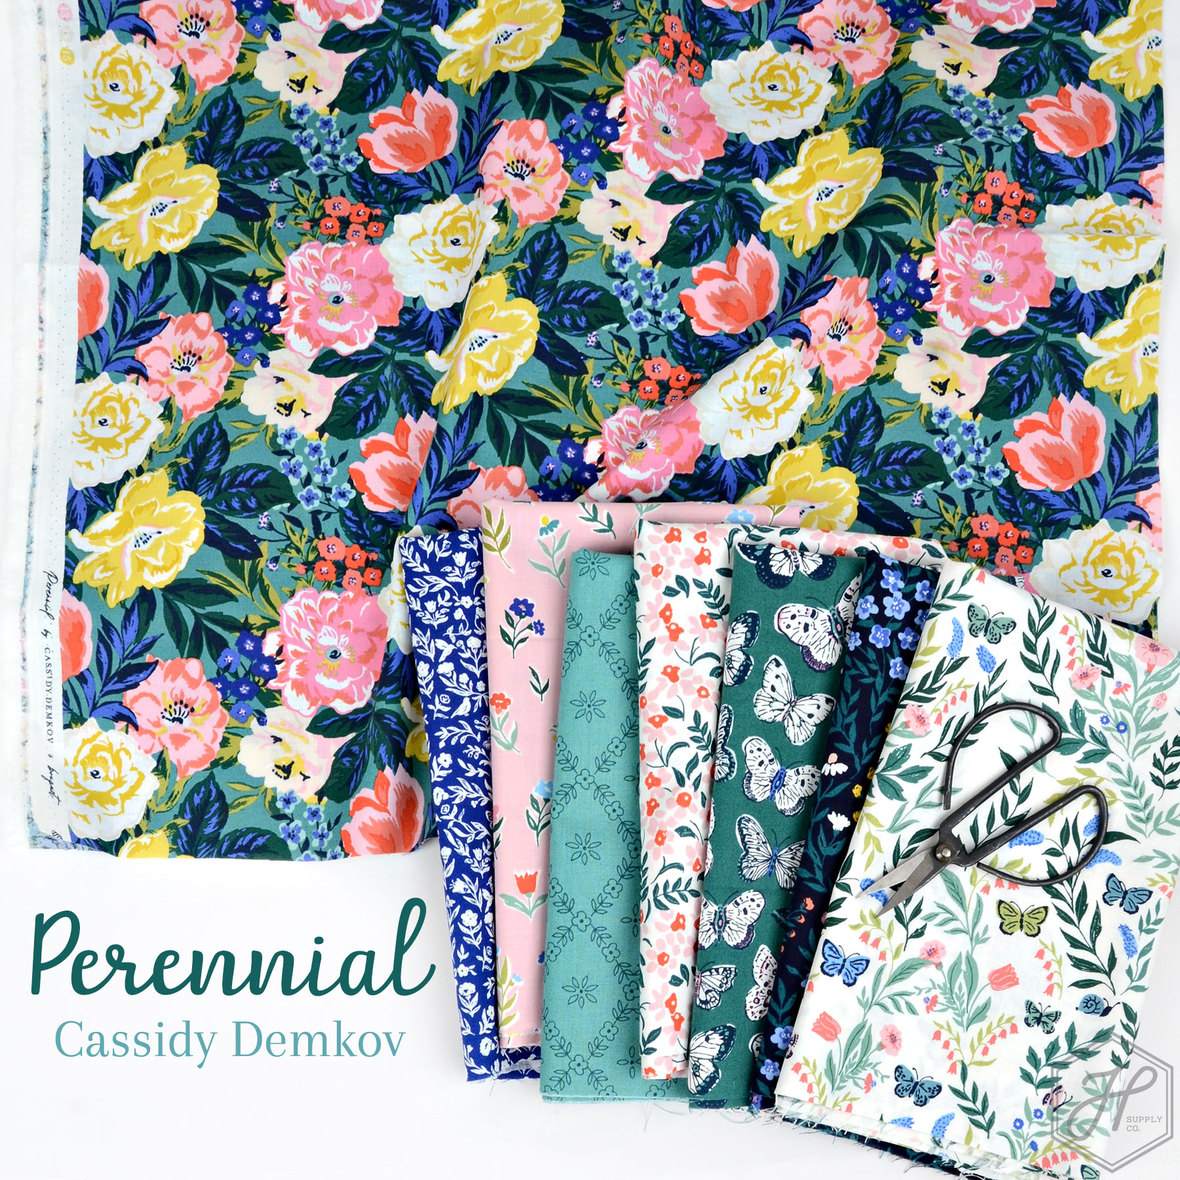 Perennial-Fabric-Cassidy-Demkov-for-Cloud-9-Organic-at-Hawthorne-Supply-Co